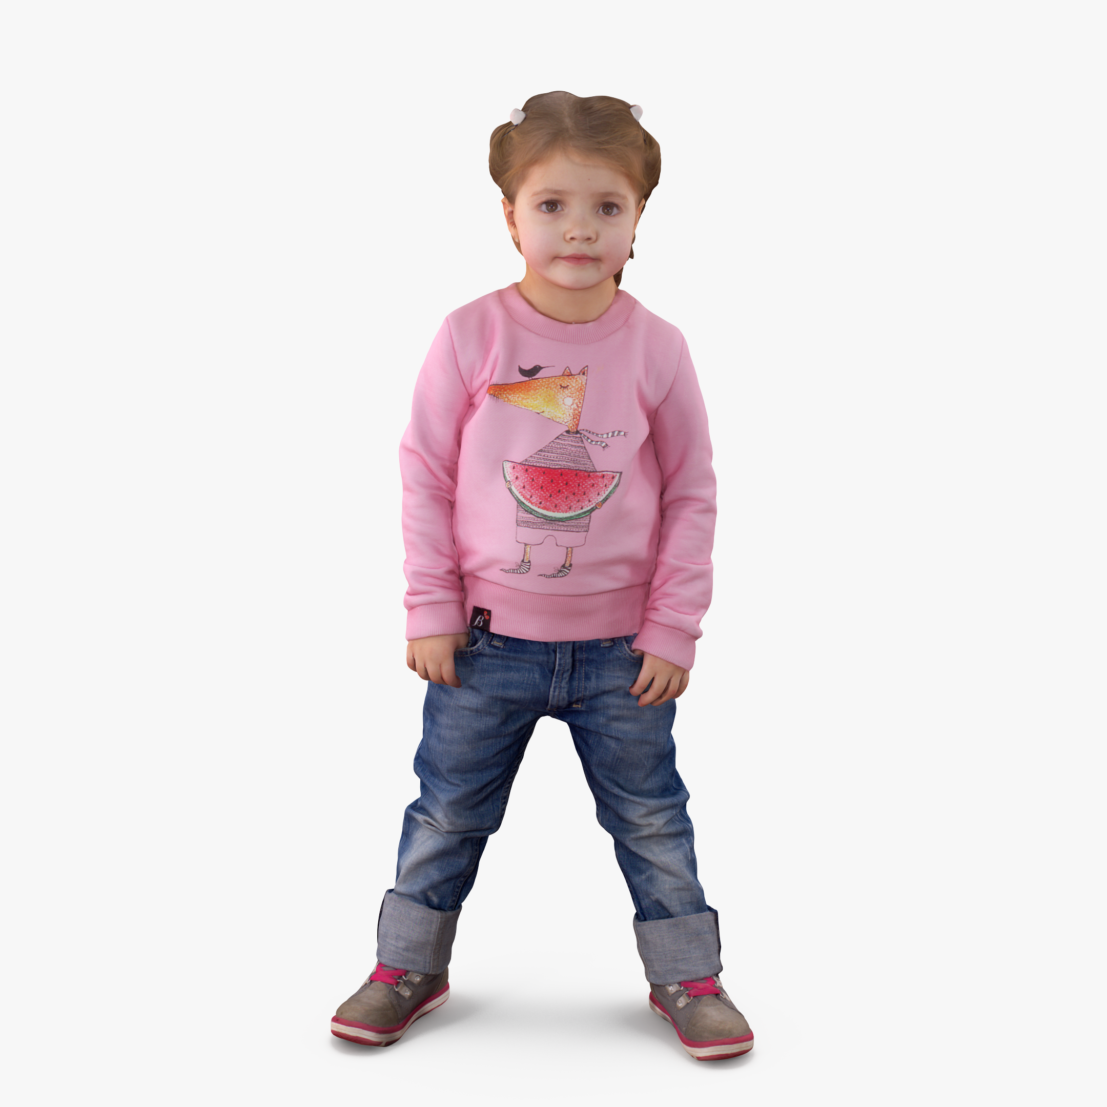 Baby Girl Standing 3D Model | 3DTree Scanning Studio